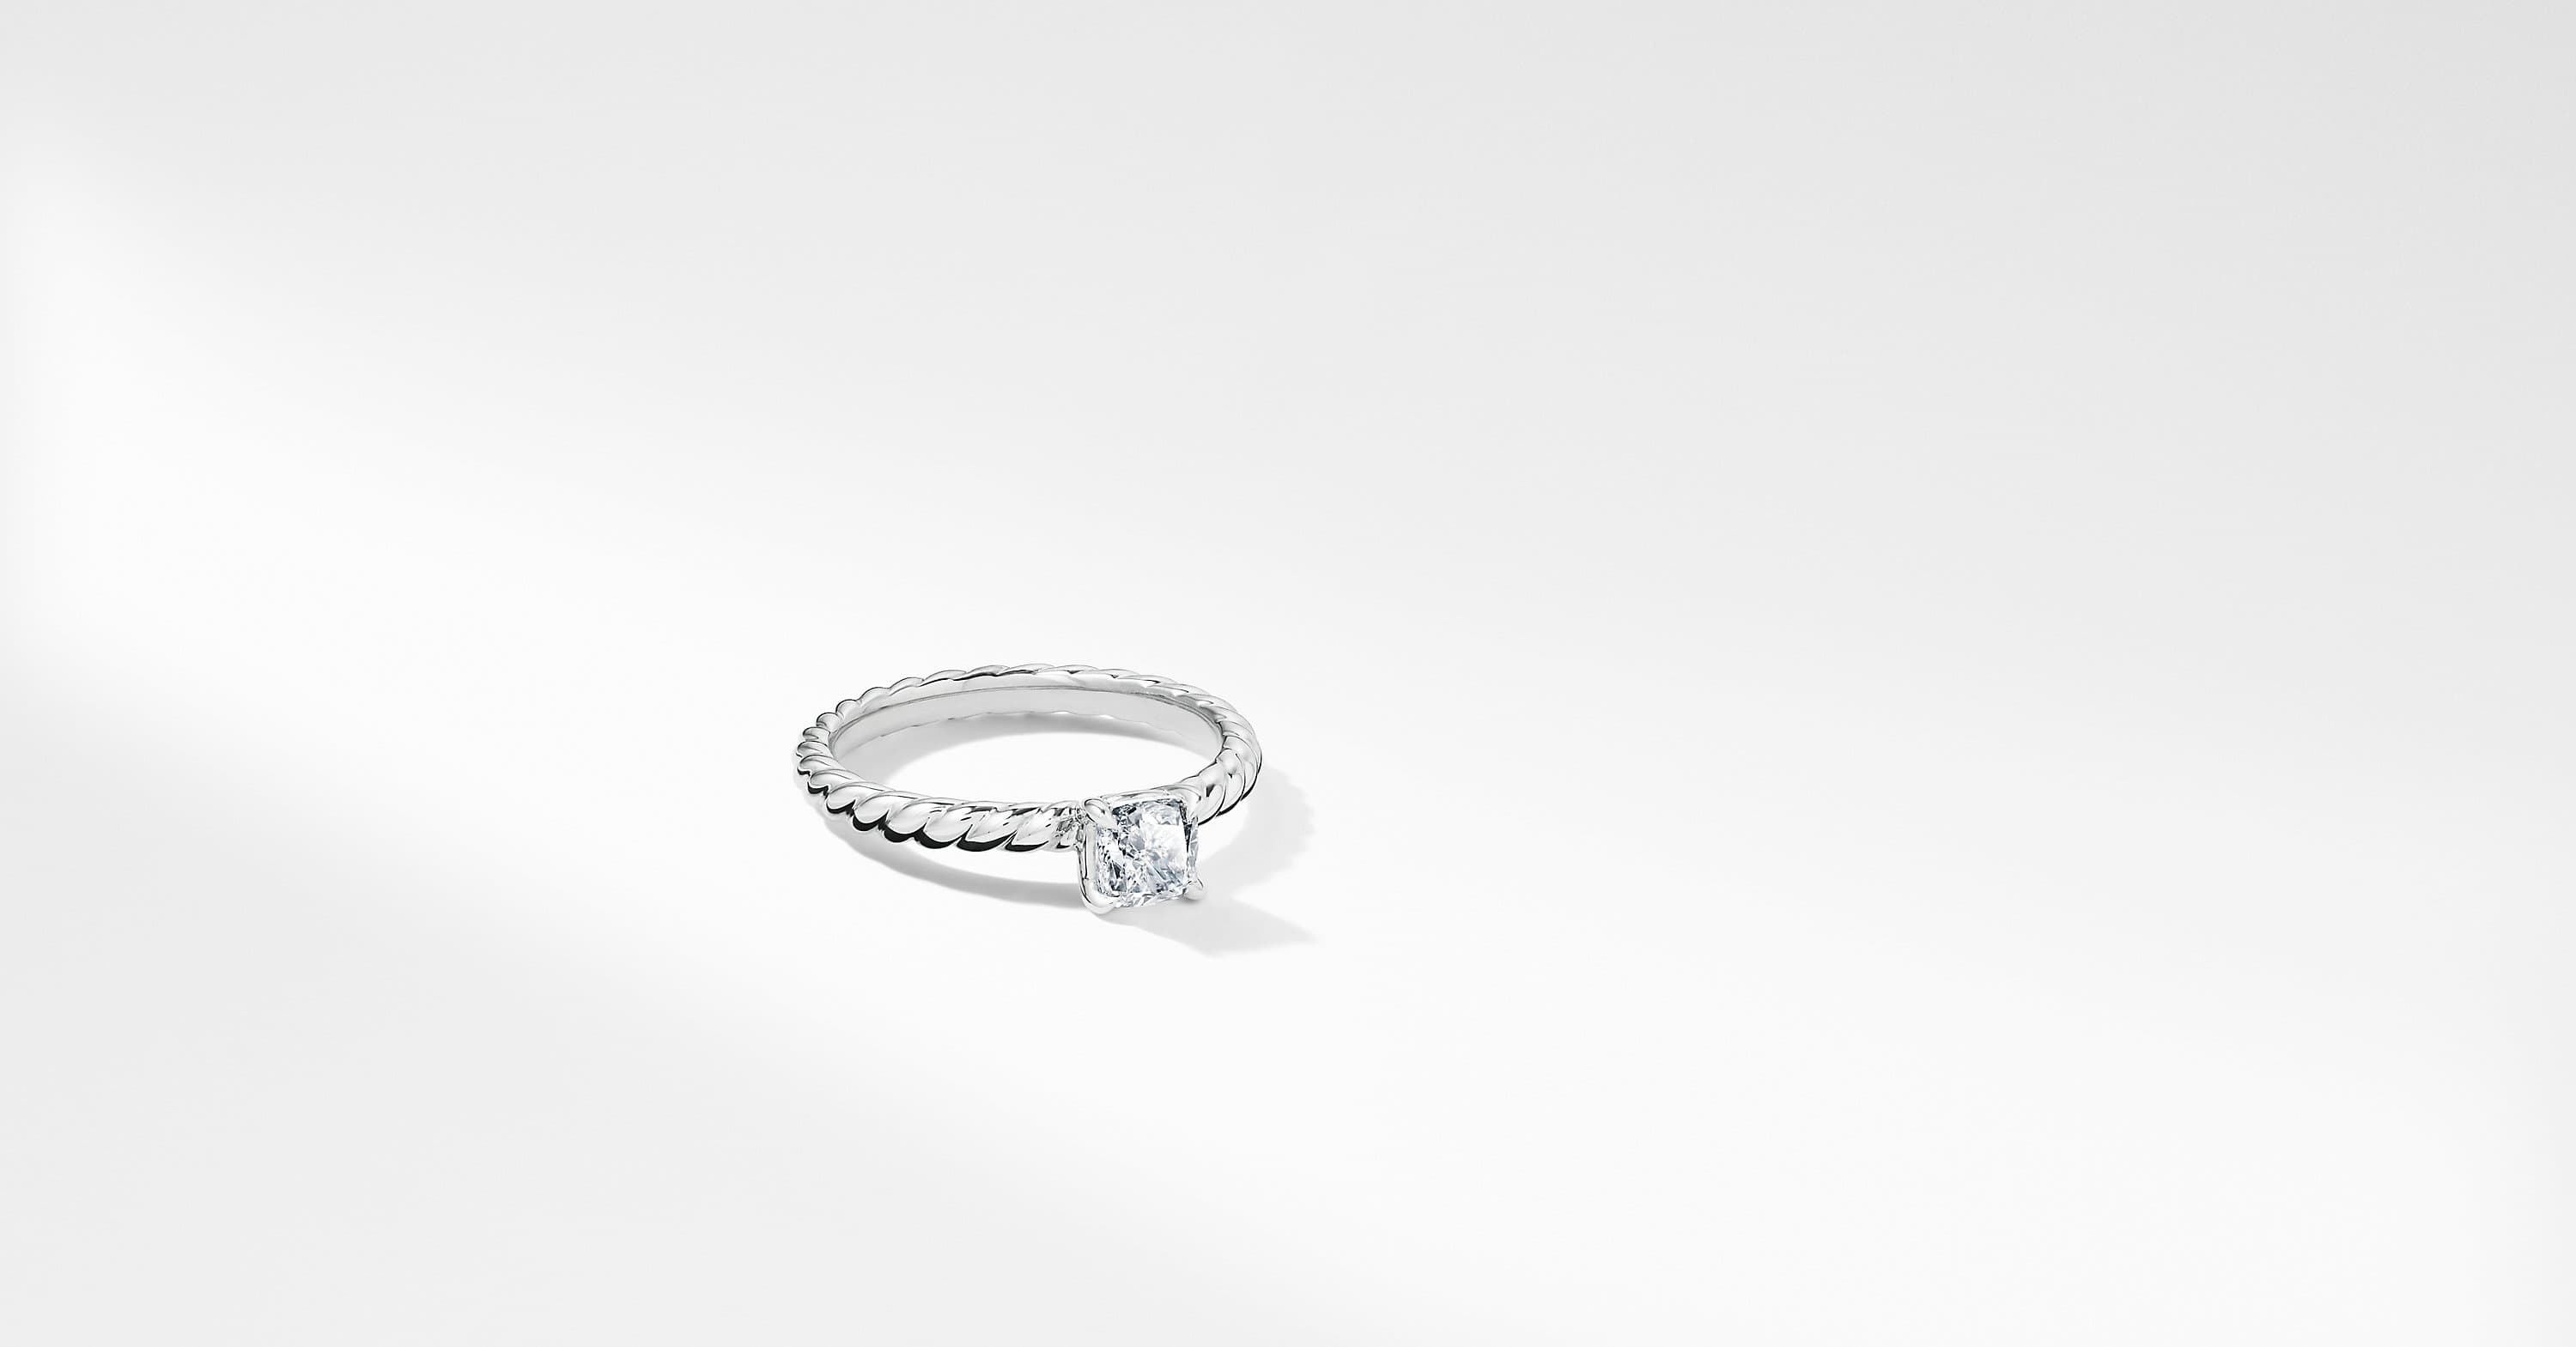 DY Unity Petite Cable Engagement Ring in Platinum, Cushion